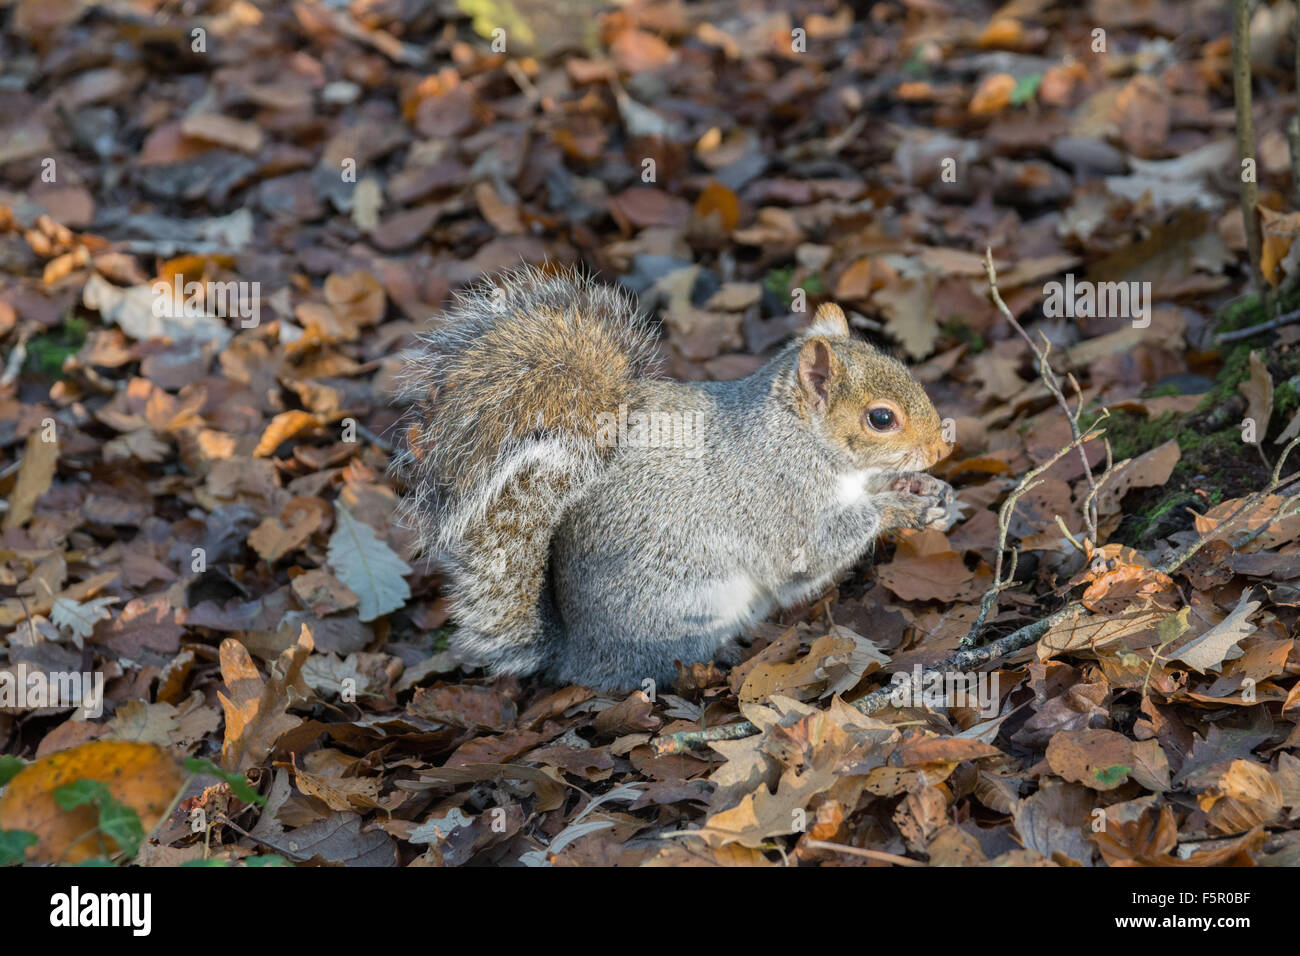 Grey squirrel eating a nut on the forest floor - Stock Image